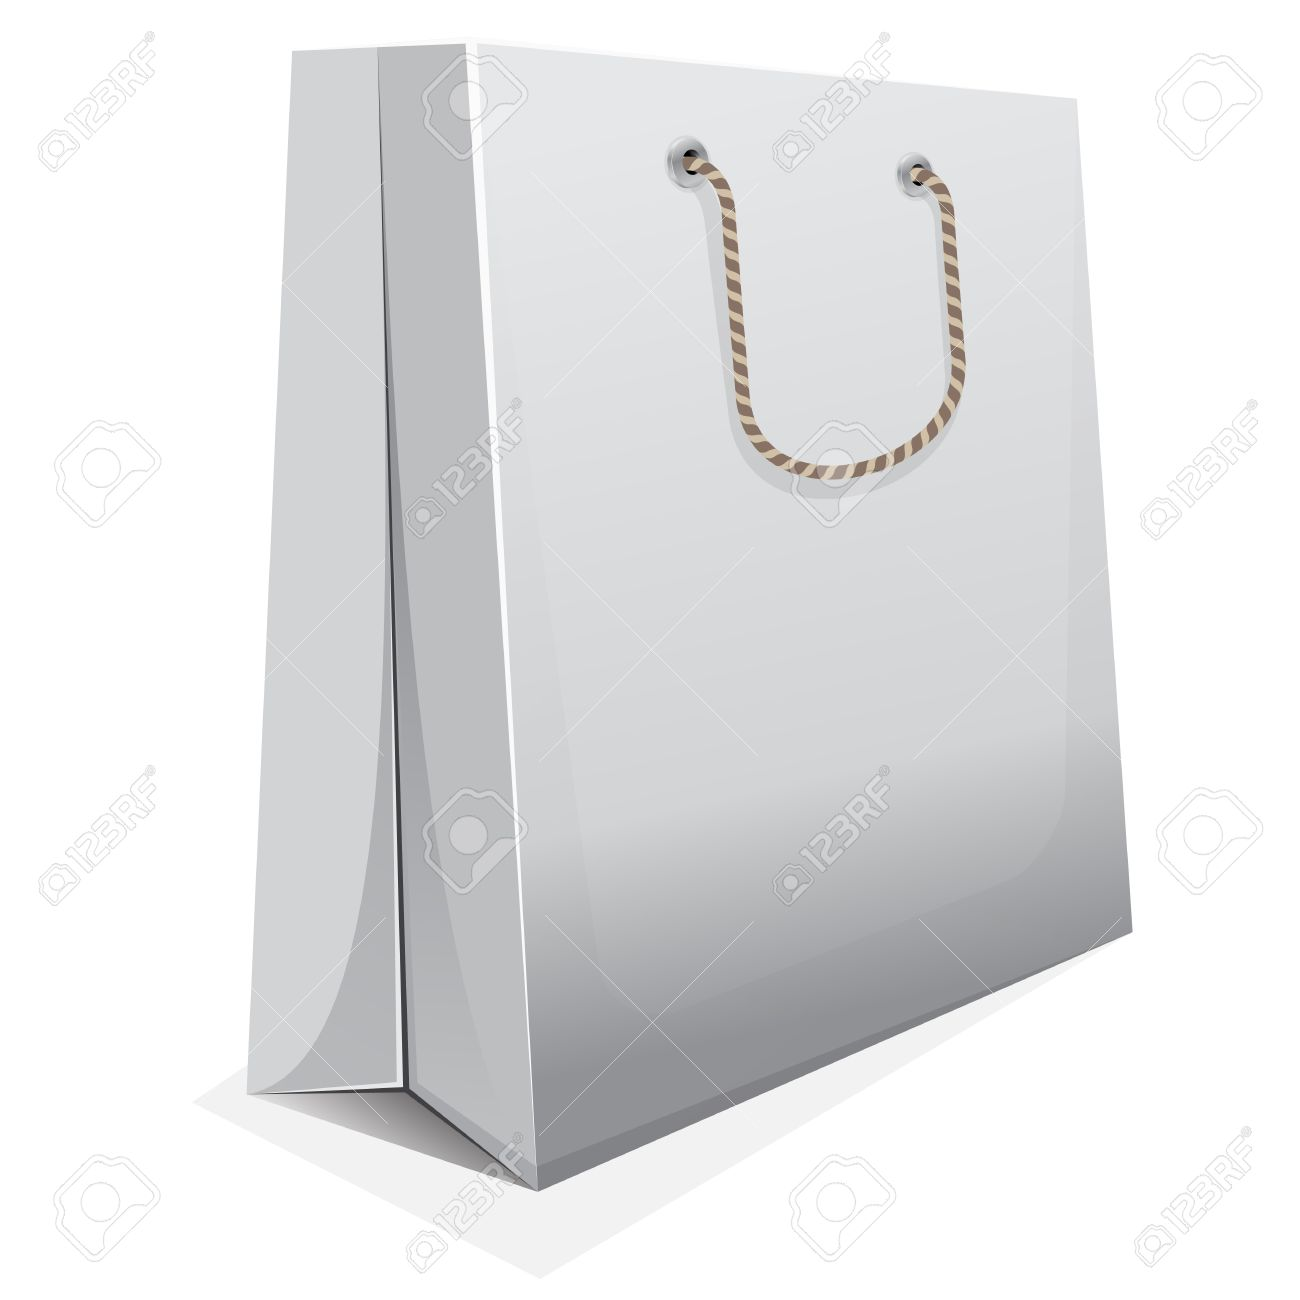 White Blank Shopping Bag With Brown Handle Royalty Free Cliparts ...